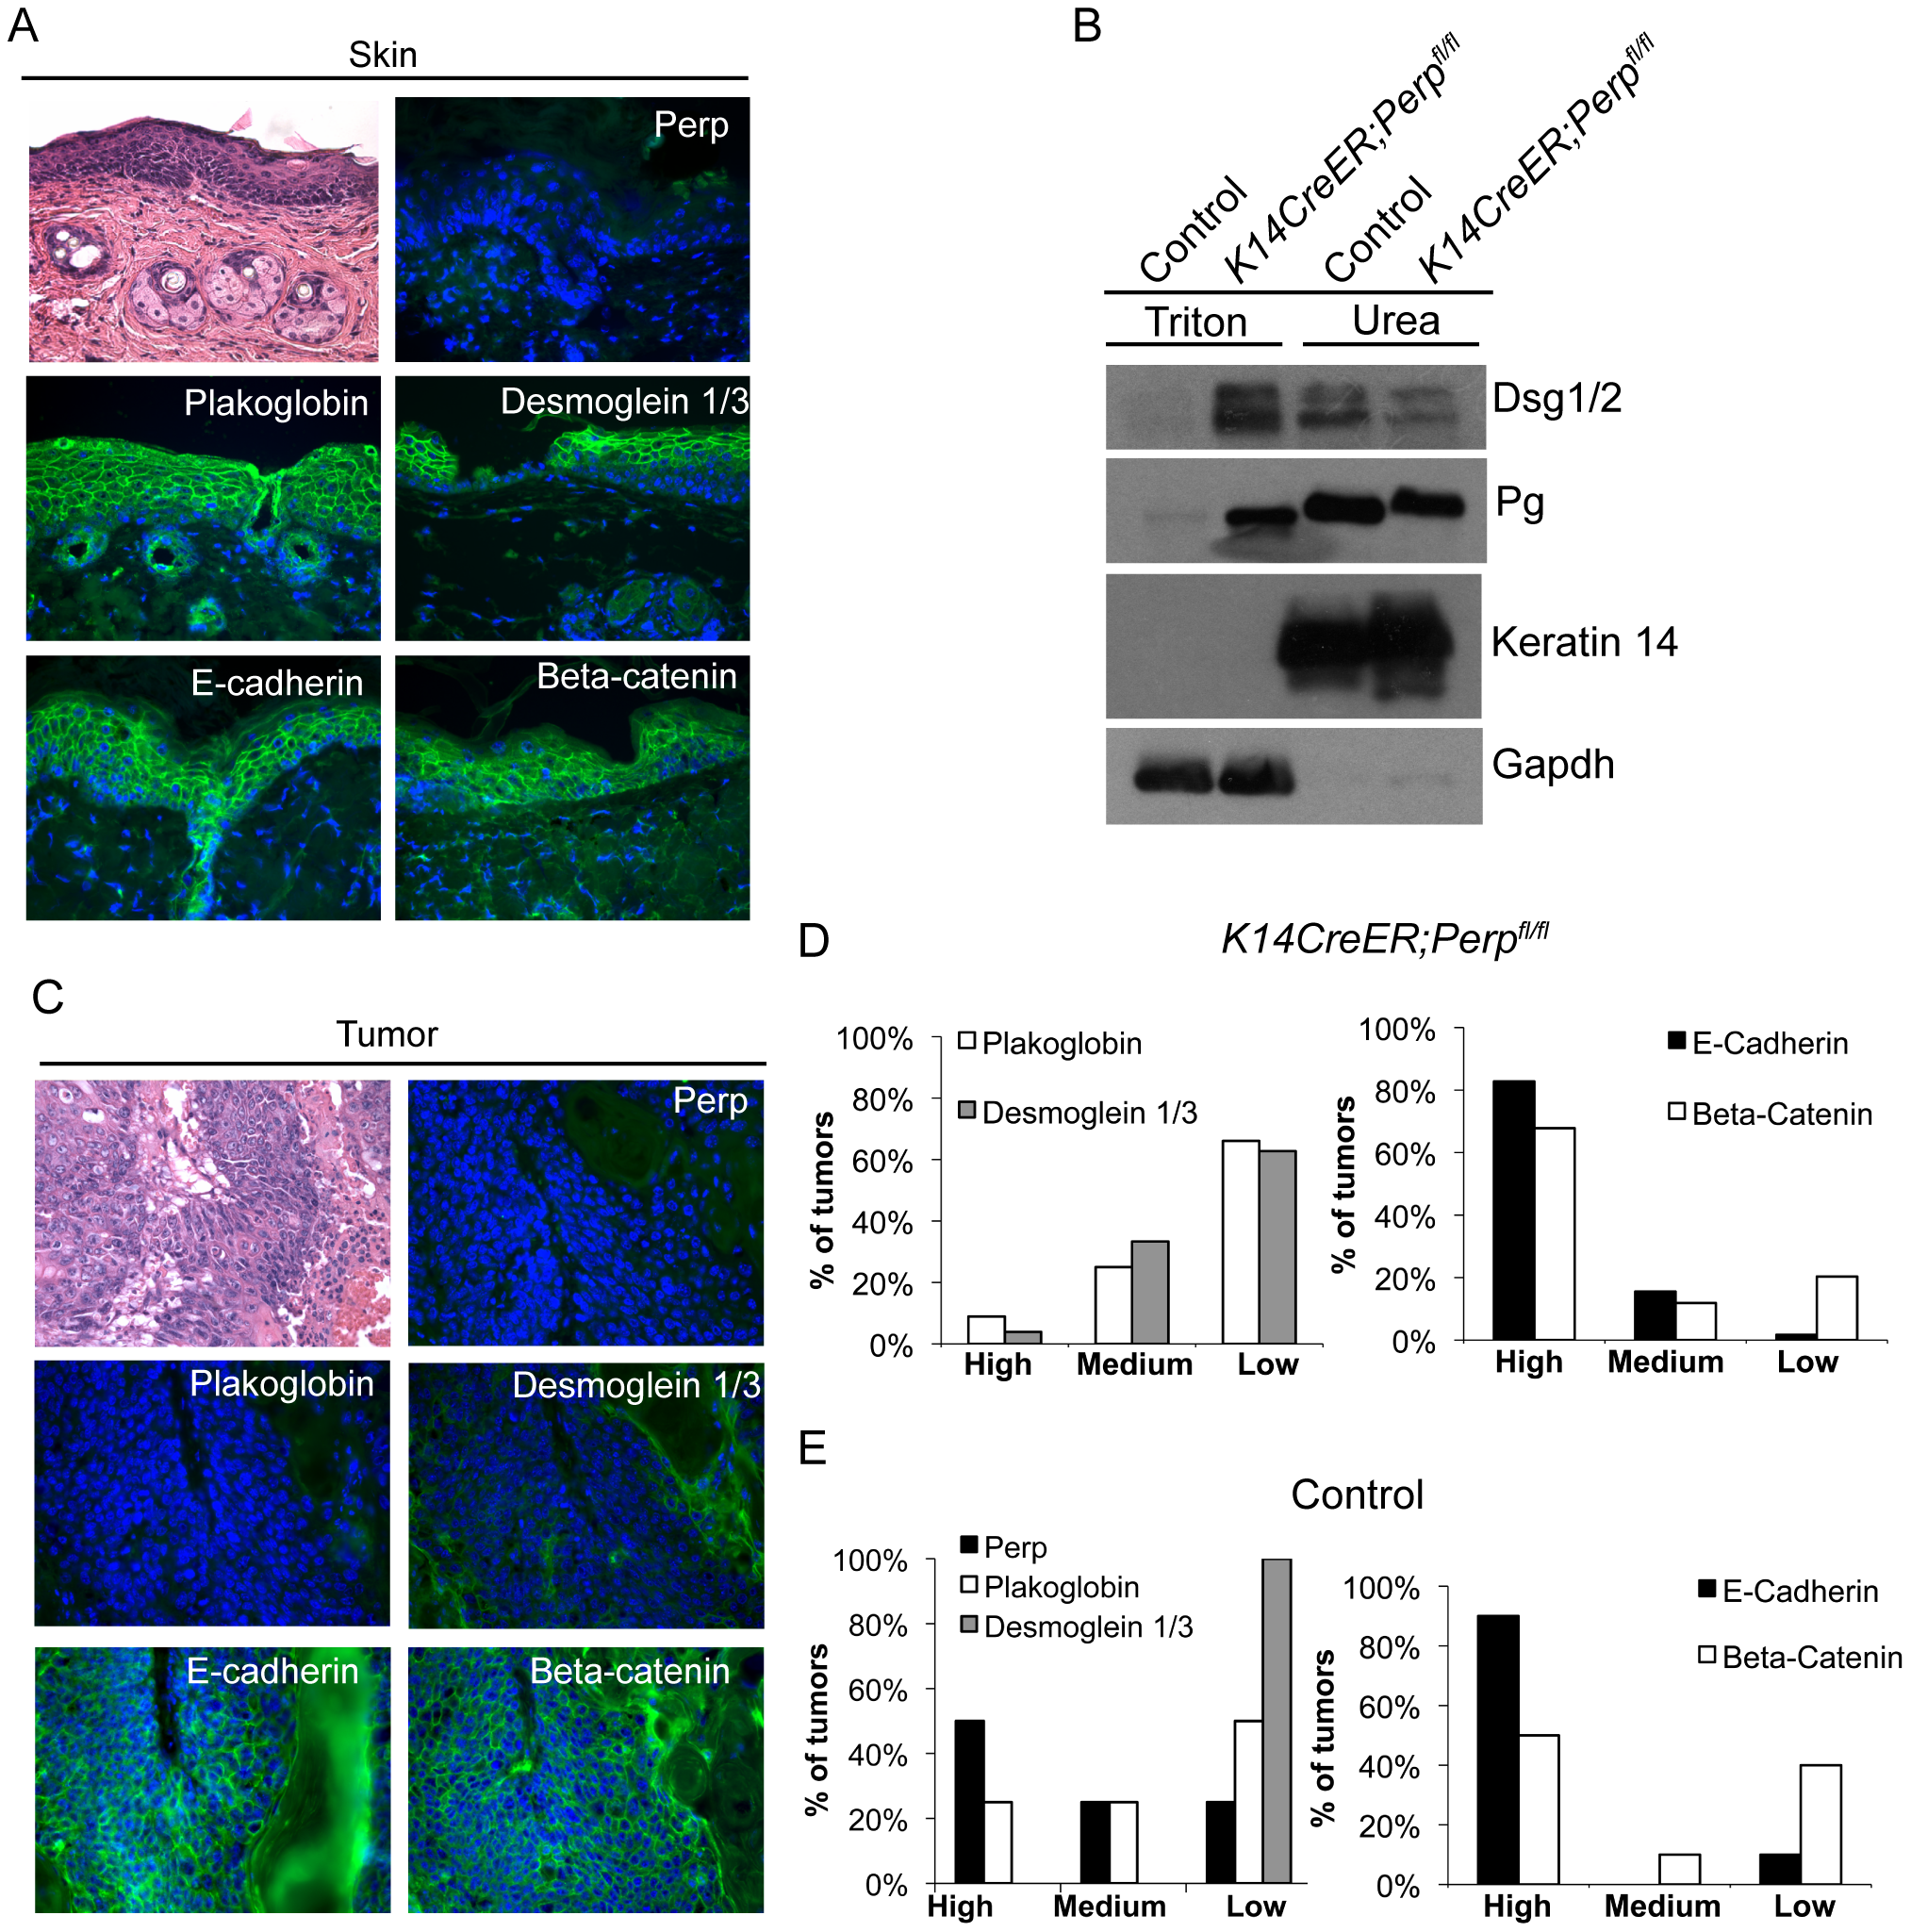 Adhesion junction analysis in tumors from <i>K14CreER;Perp<sup>fl/fl</sup></i> and control mice.